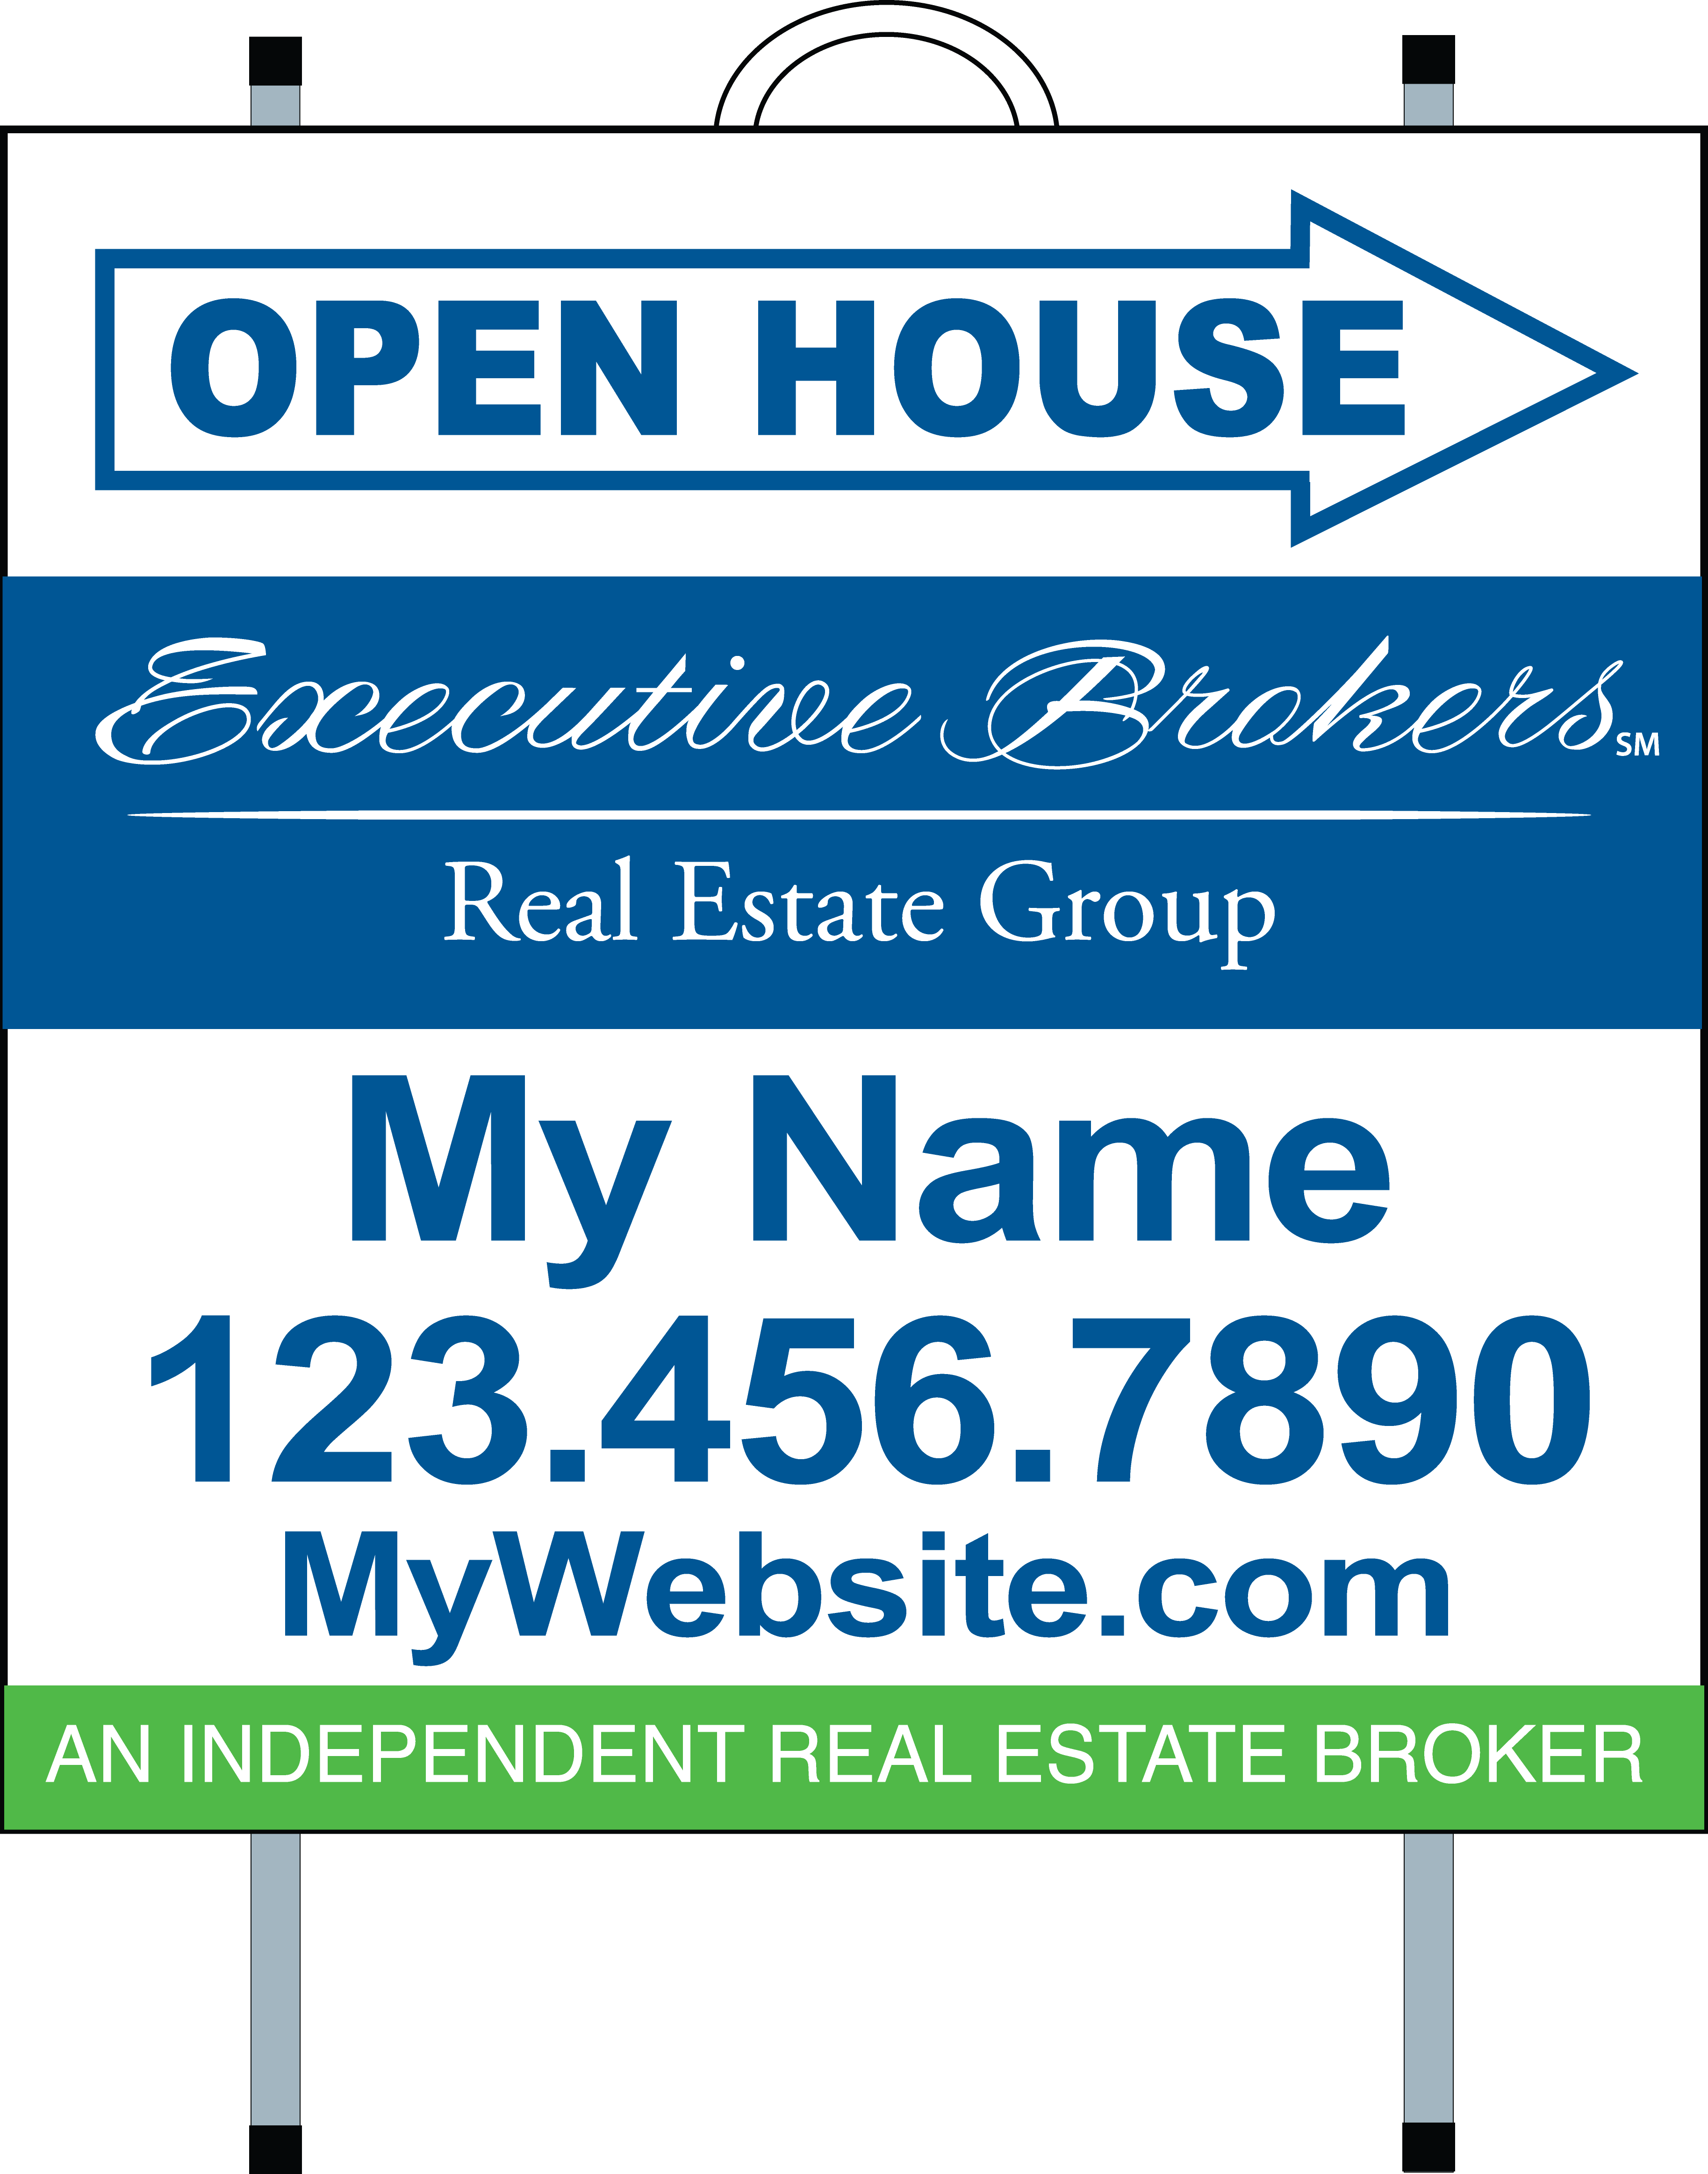 Executive Brokers | Real Estate Signs, Yard Signs, Open House Signs